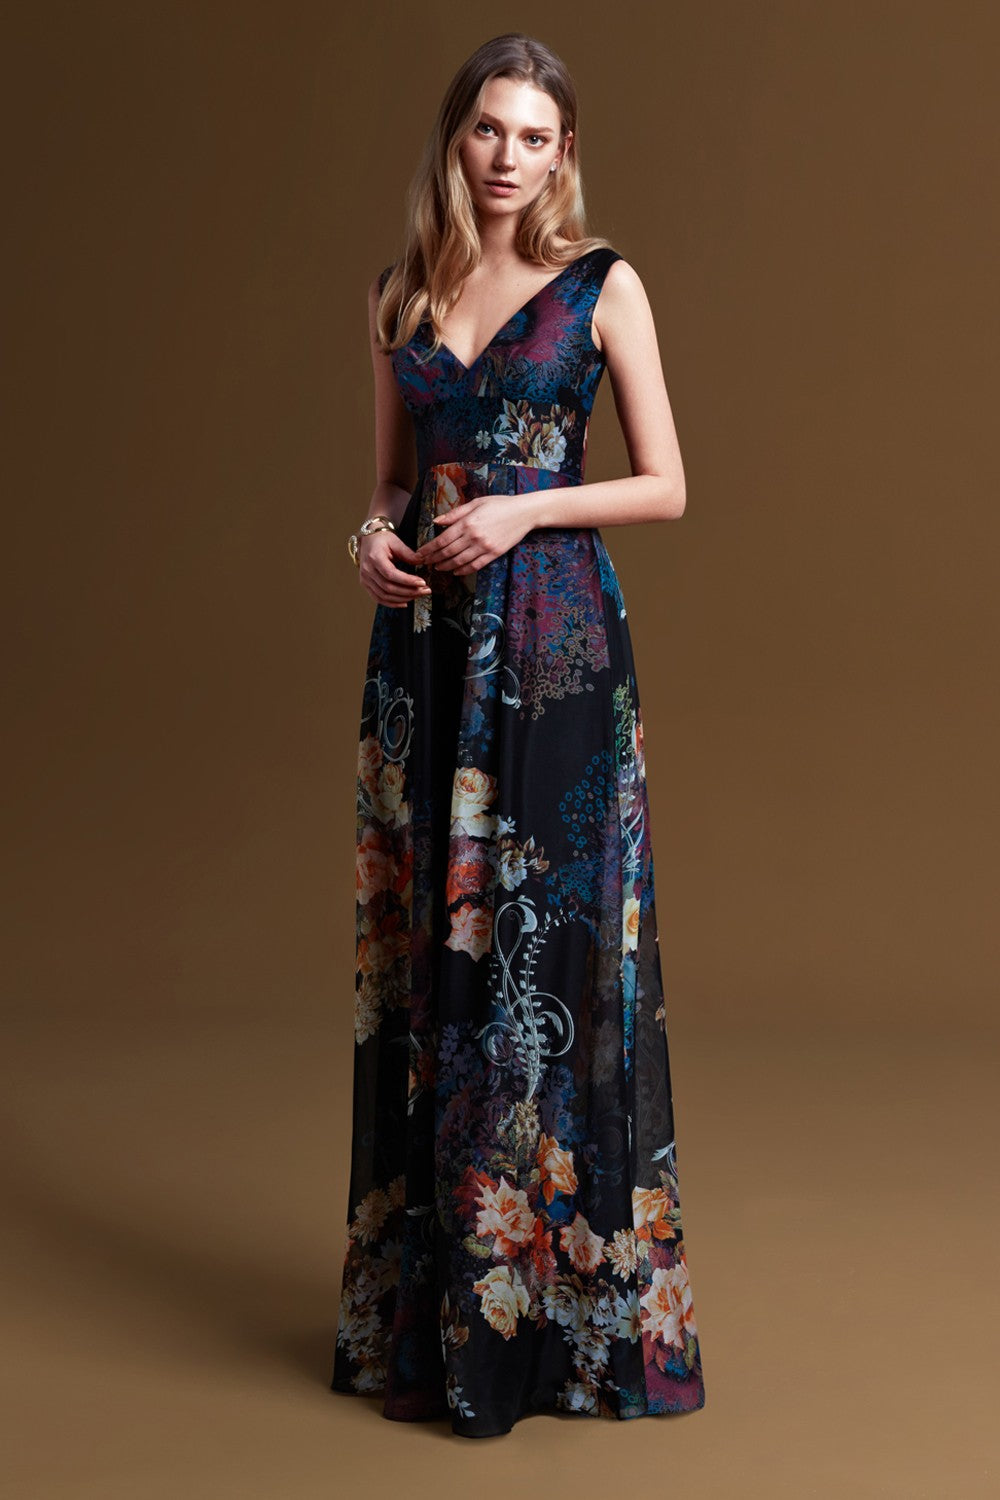 Floral Printed V-neck Formal Gown-4xlvc3285v2